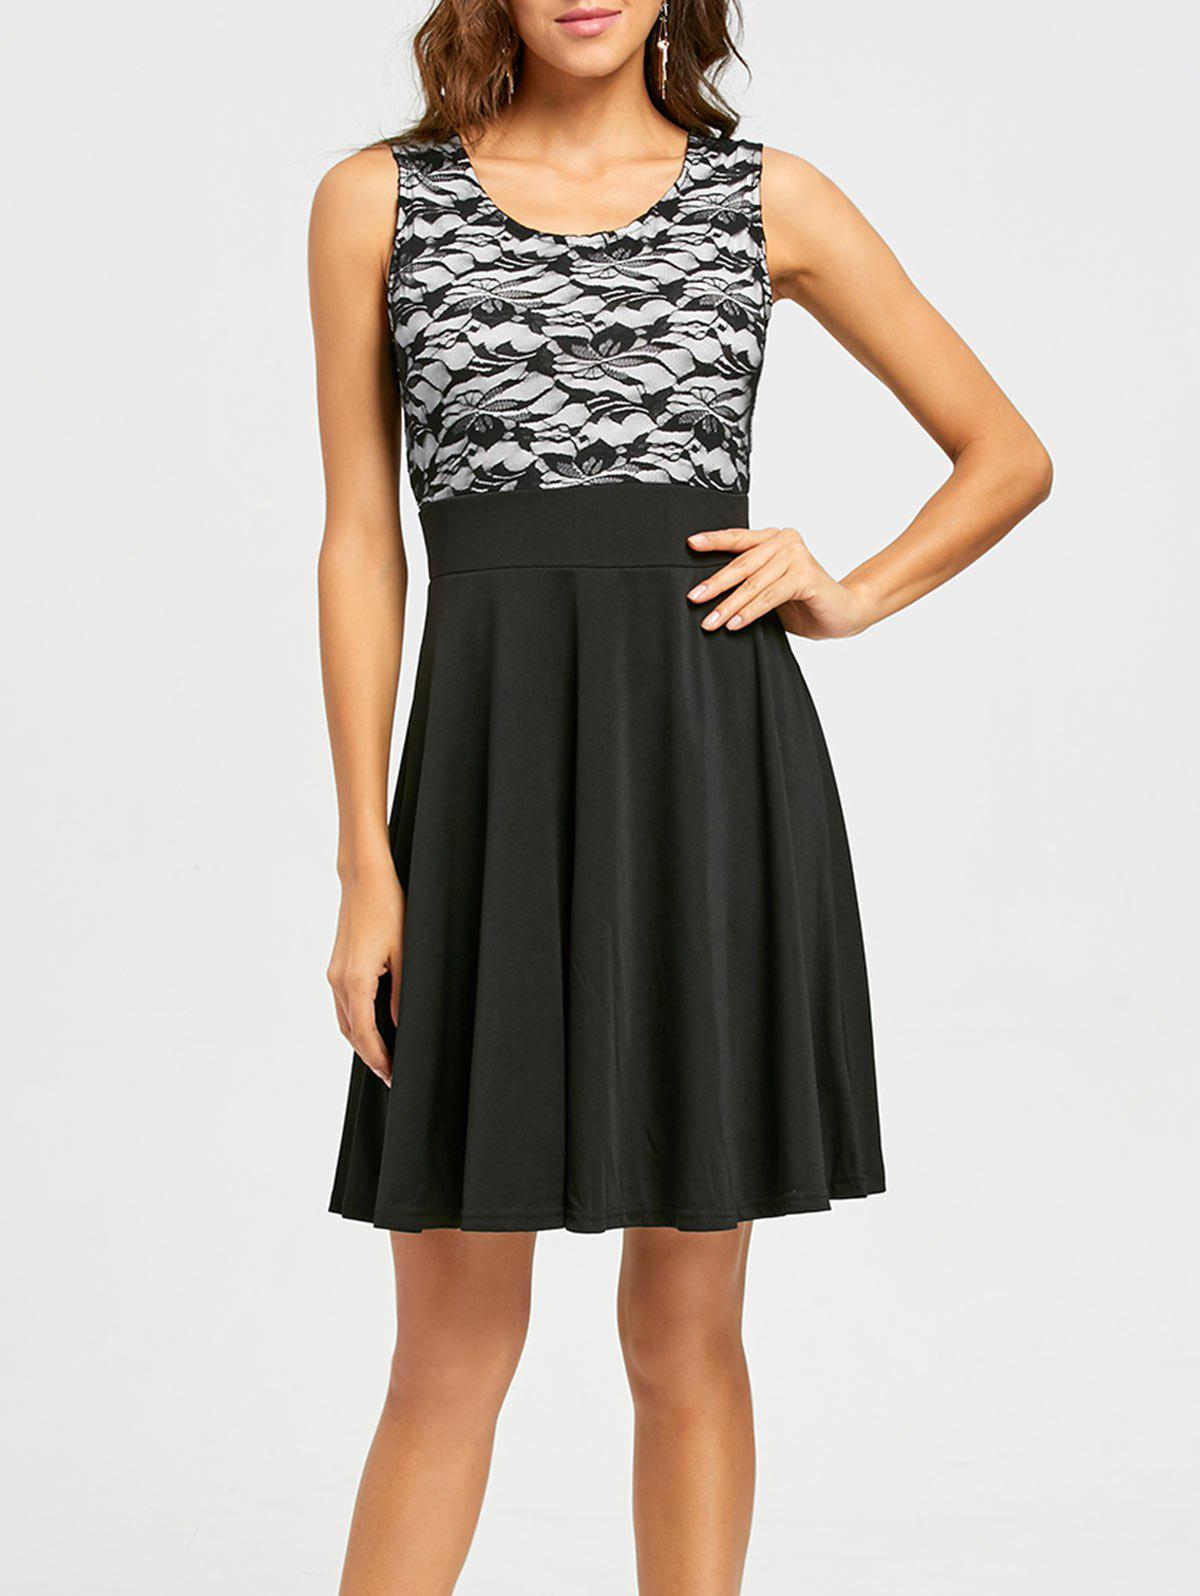 Sleeveless Floral Lace Panel Fit and Flare Dress - BLACK L